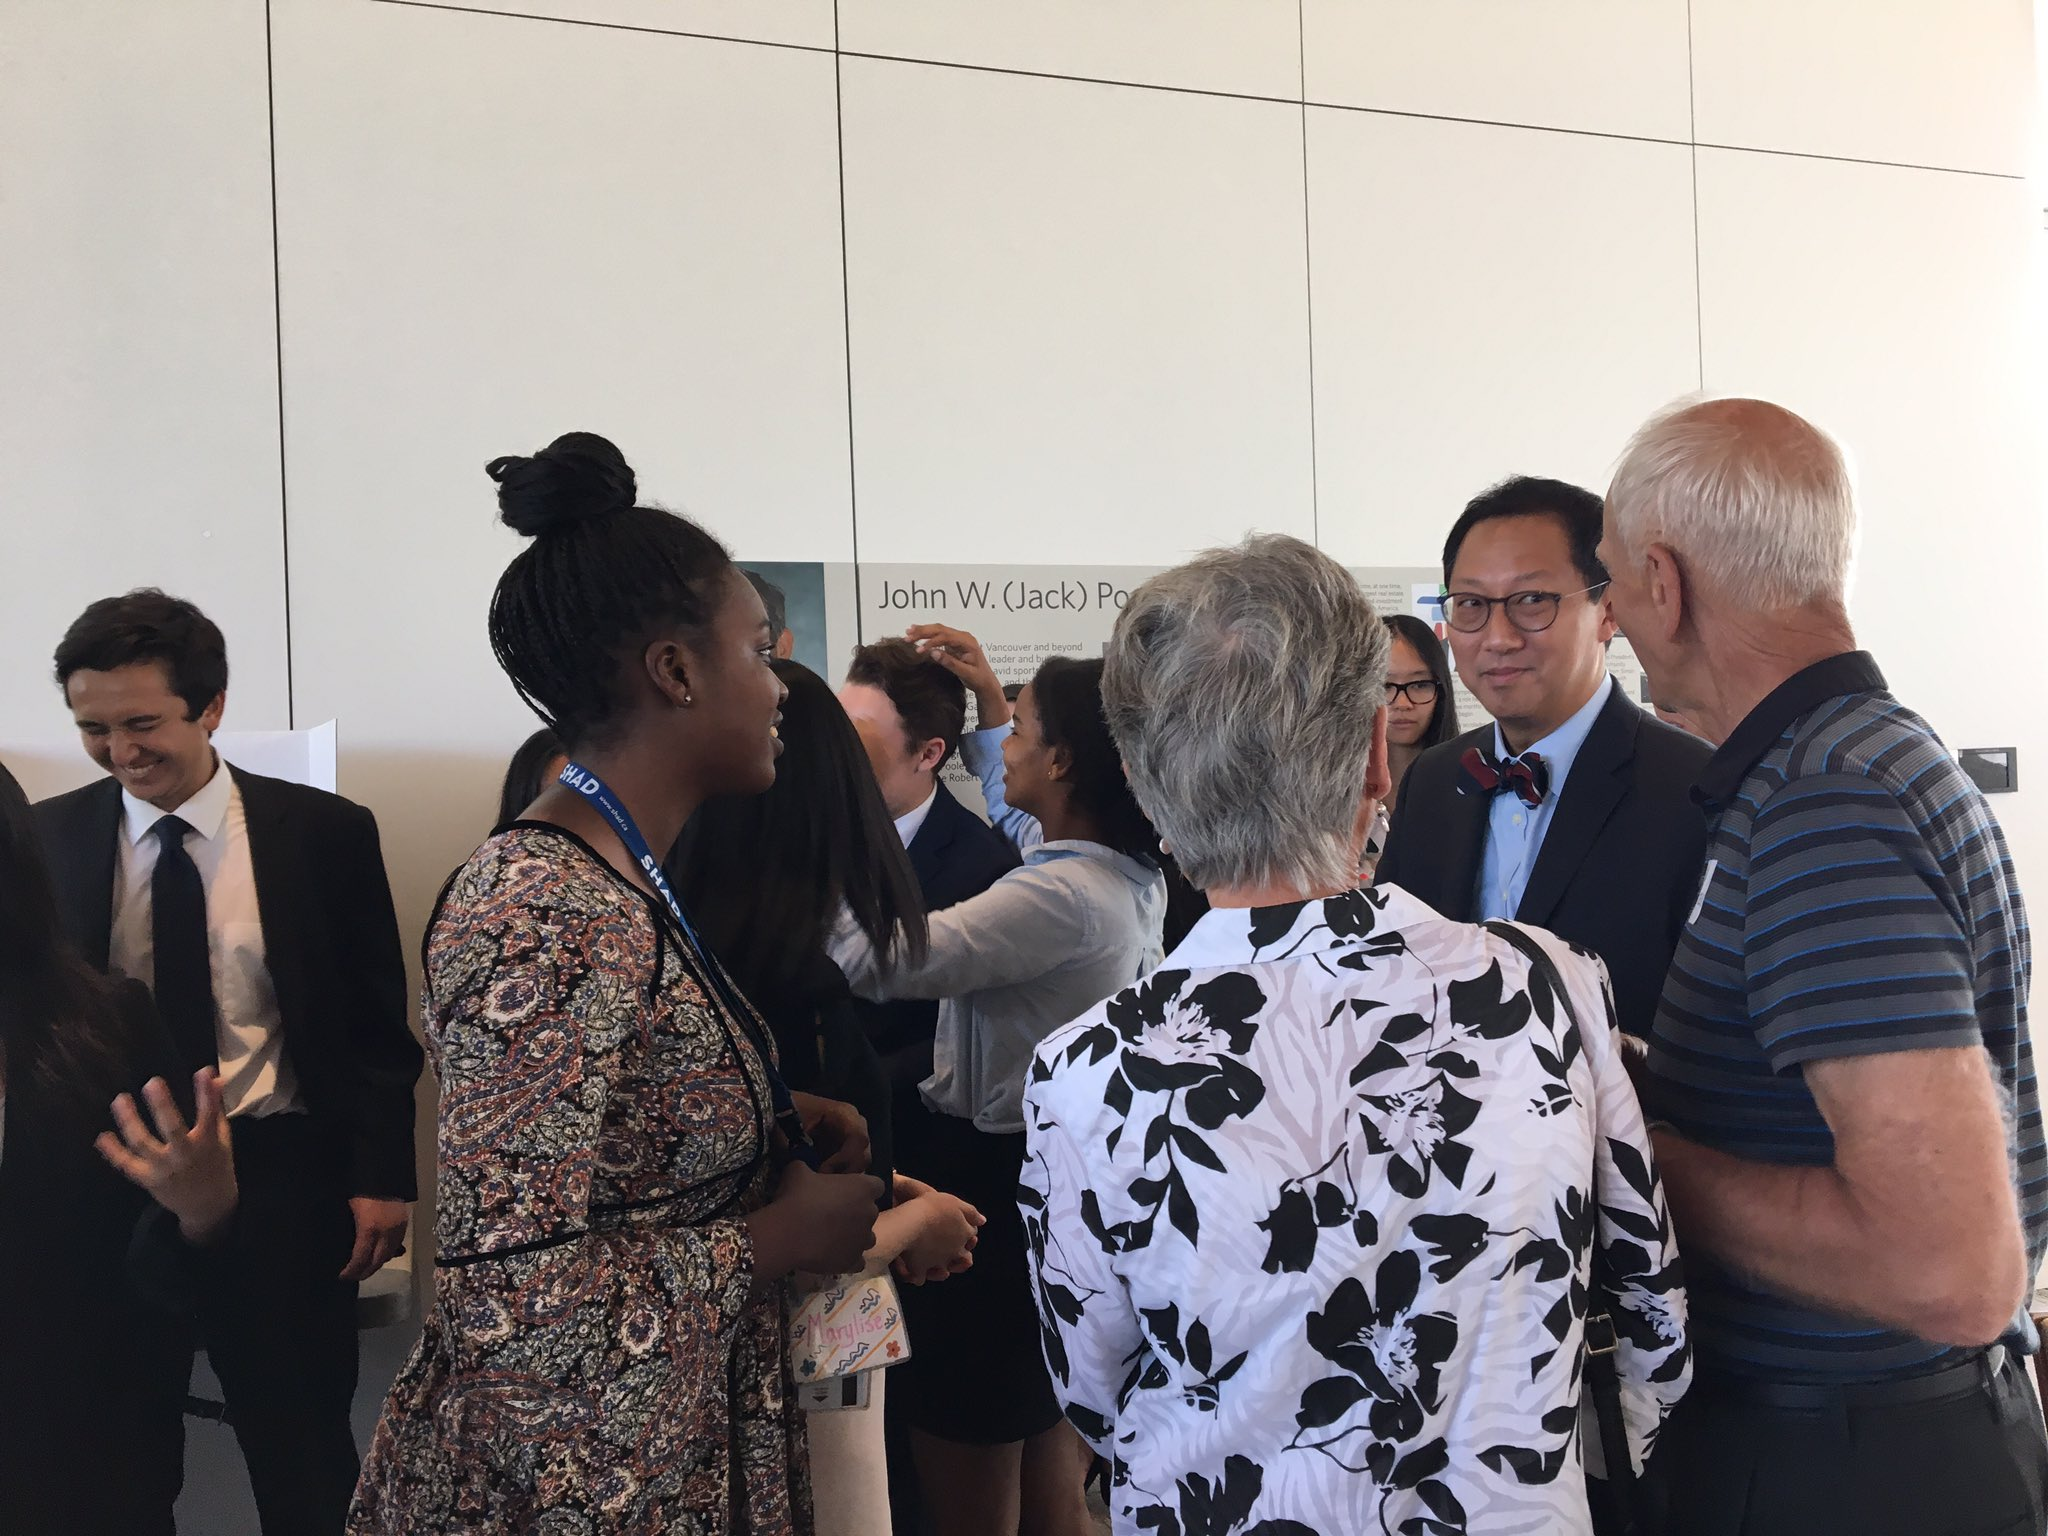 Thank you , @ubcprez for coming as our esteemed guest to our SHAD Open Day! #SHADOpen https://t.co/mUeqx6t49b